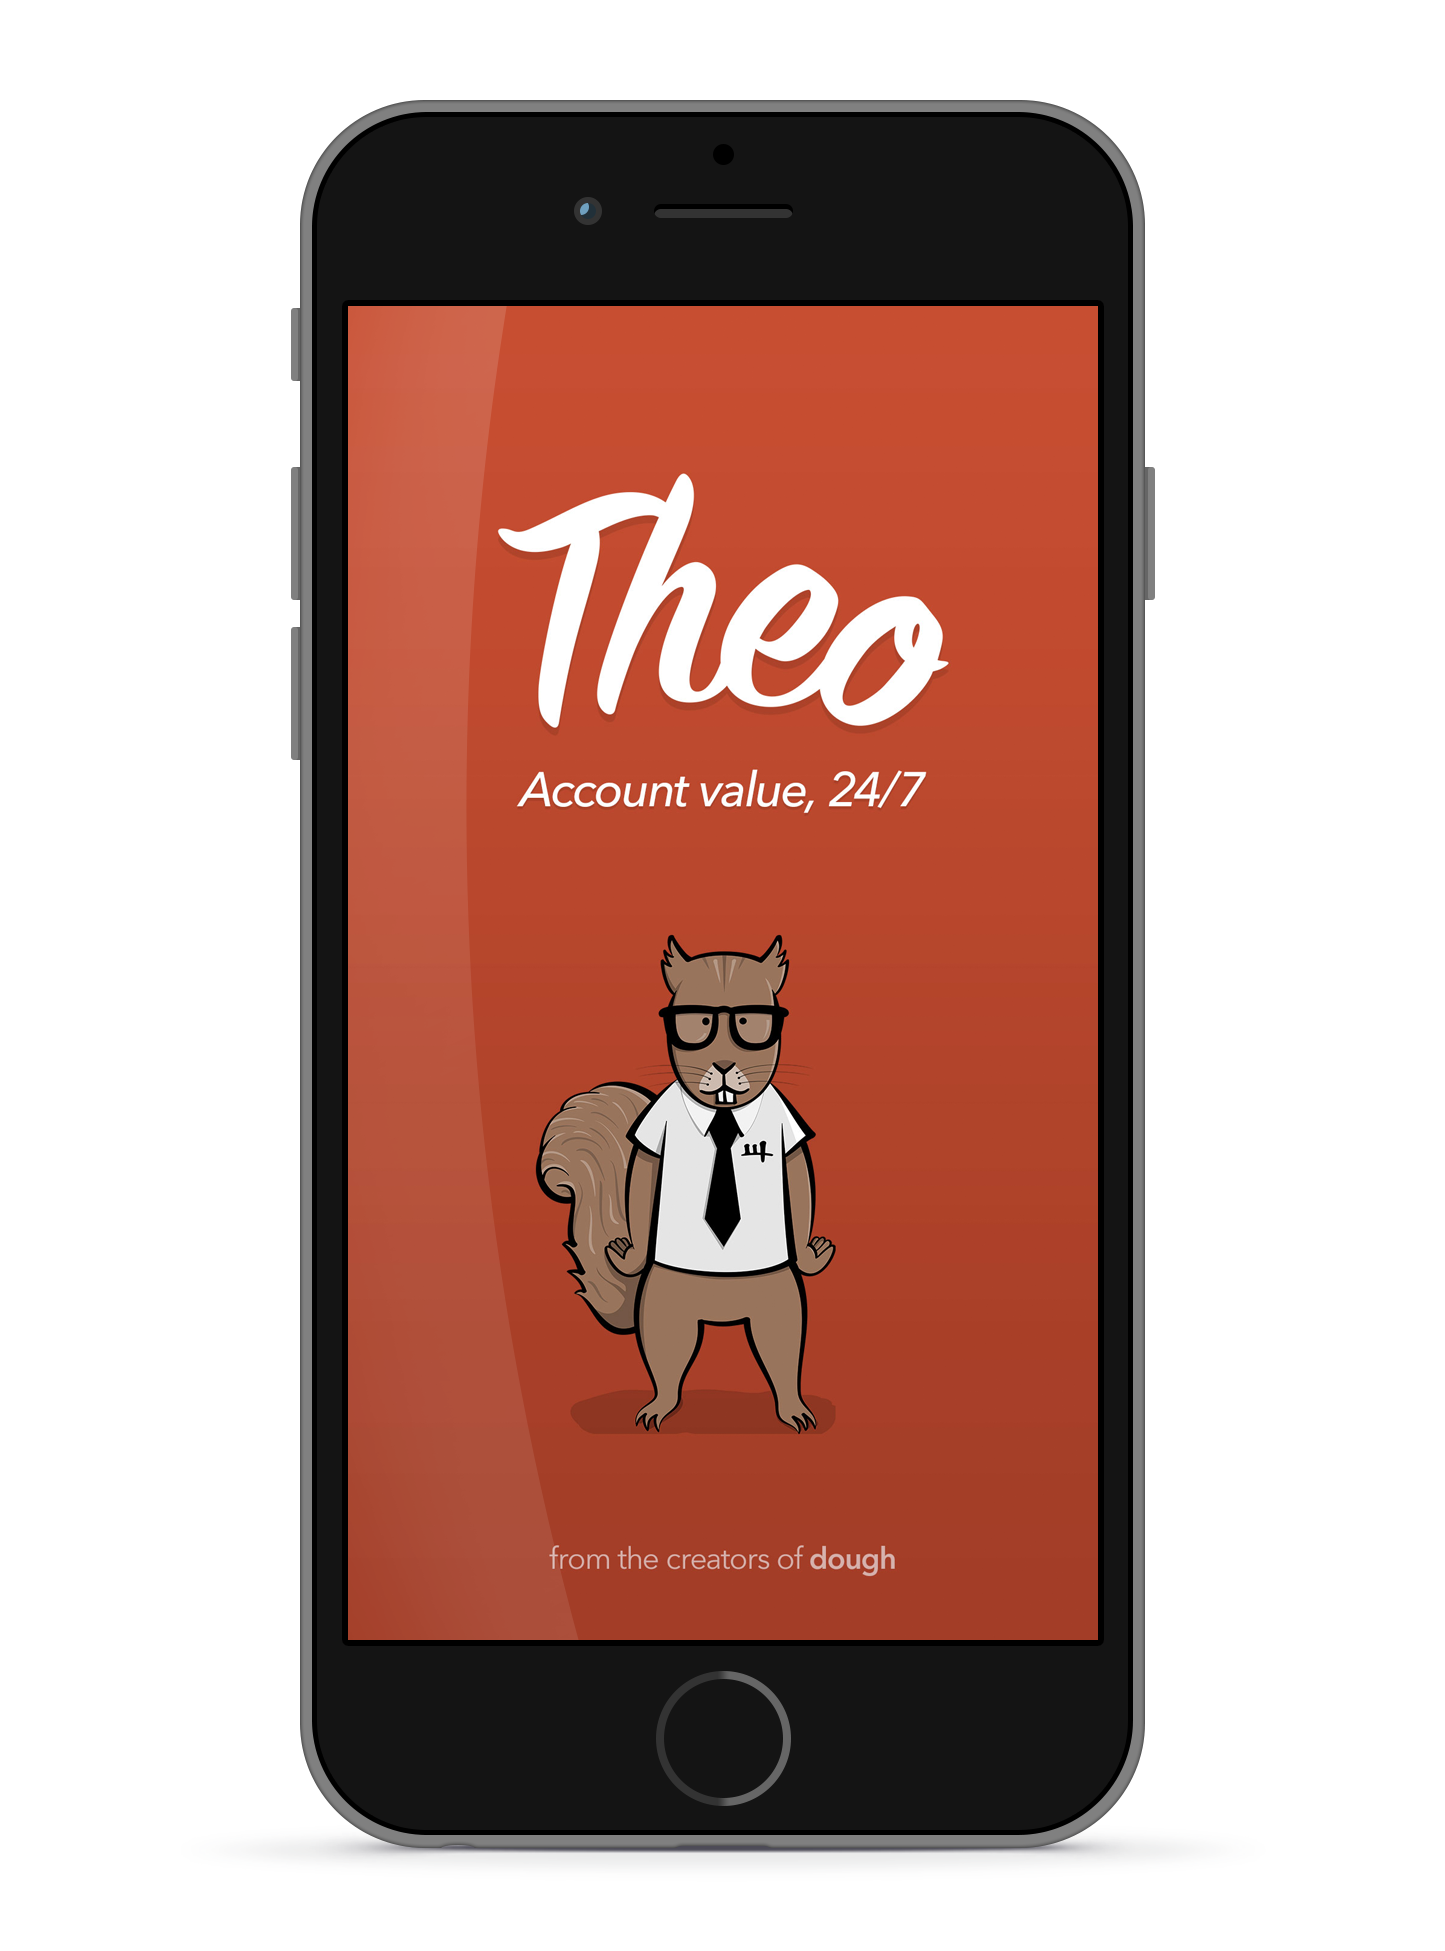 theo_screen_1.png